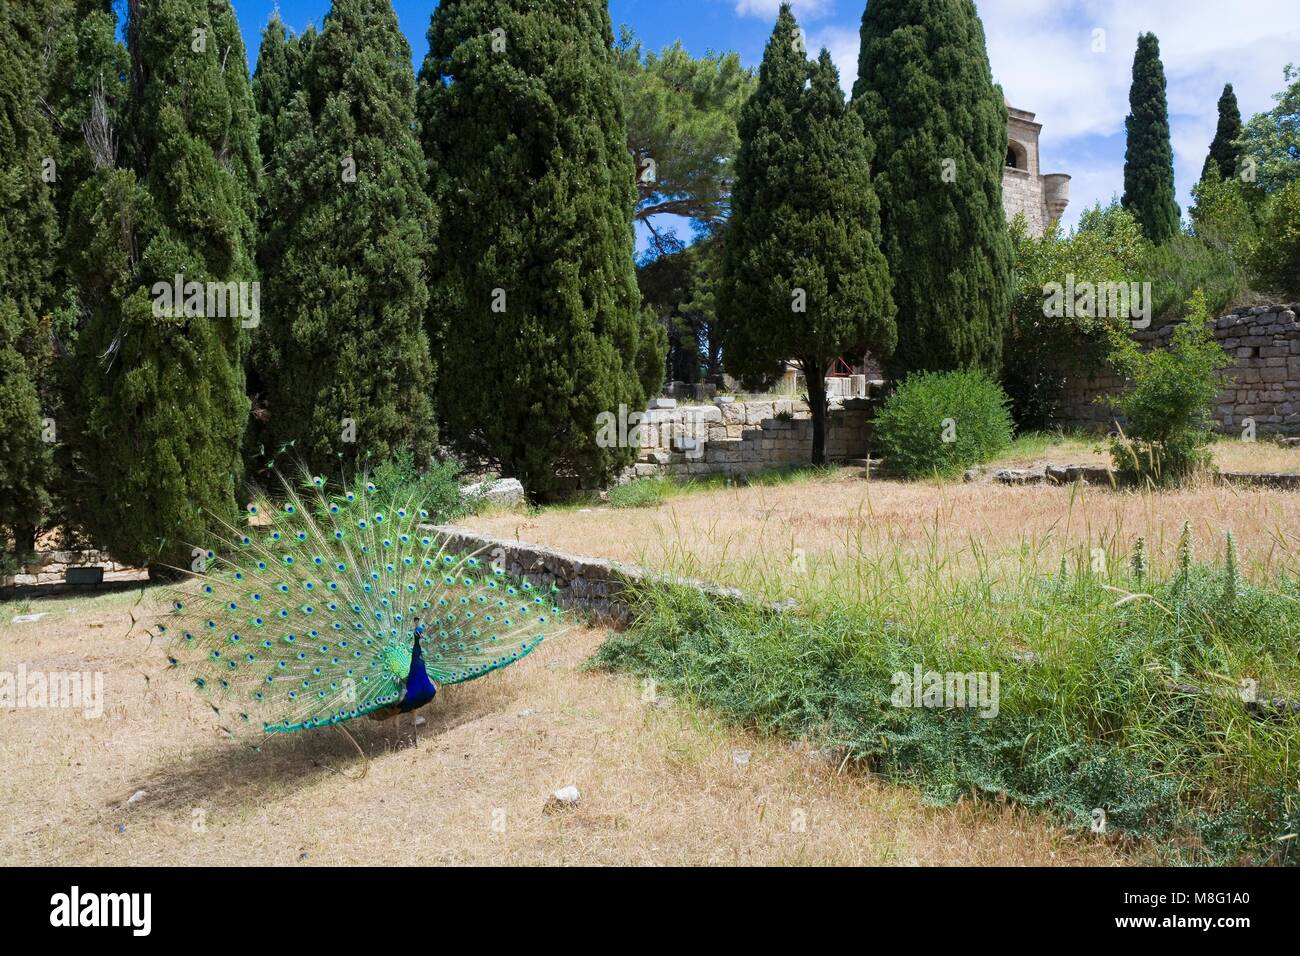 Peacock in Filerimos Monastery in Rhodes Island built by the Knights of Saint John, Greece - Stock Image